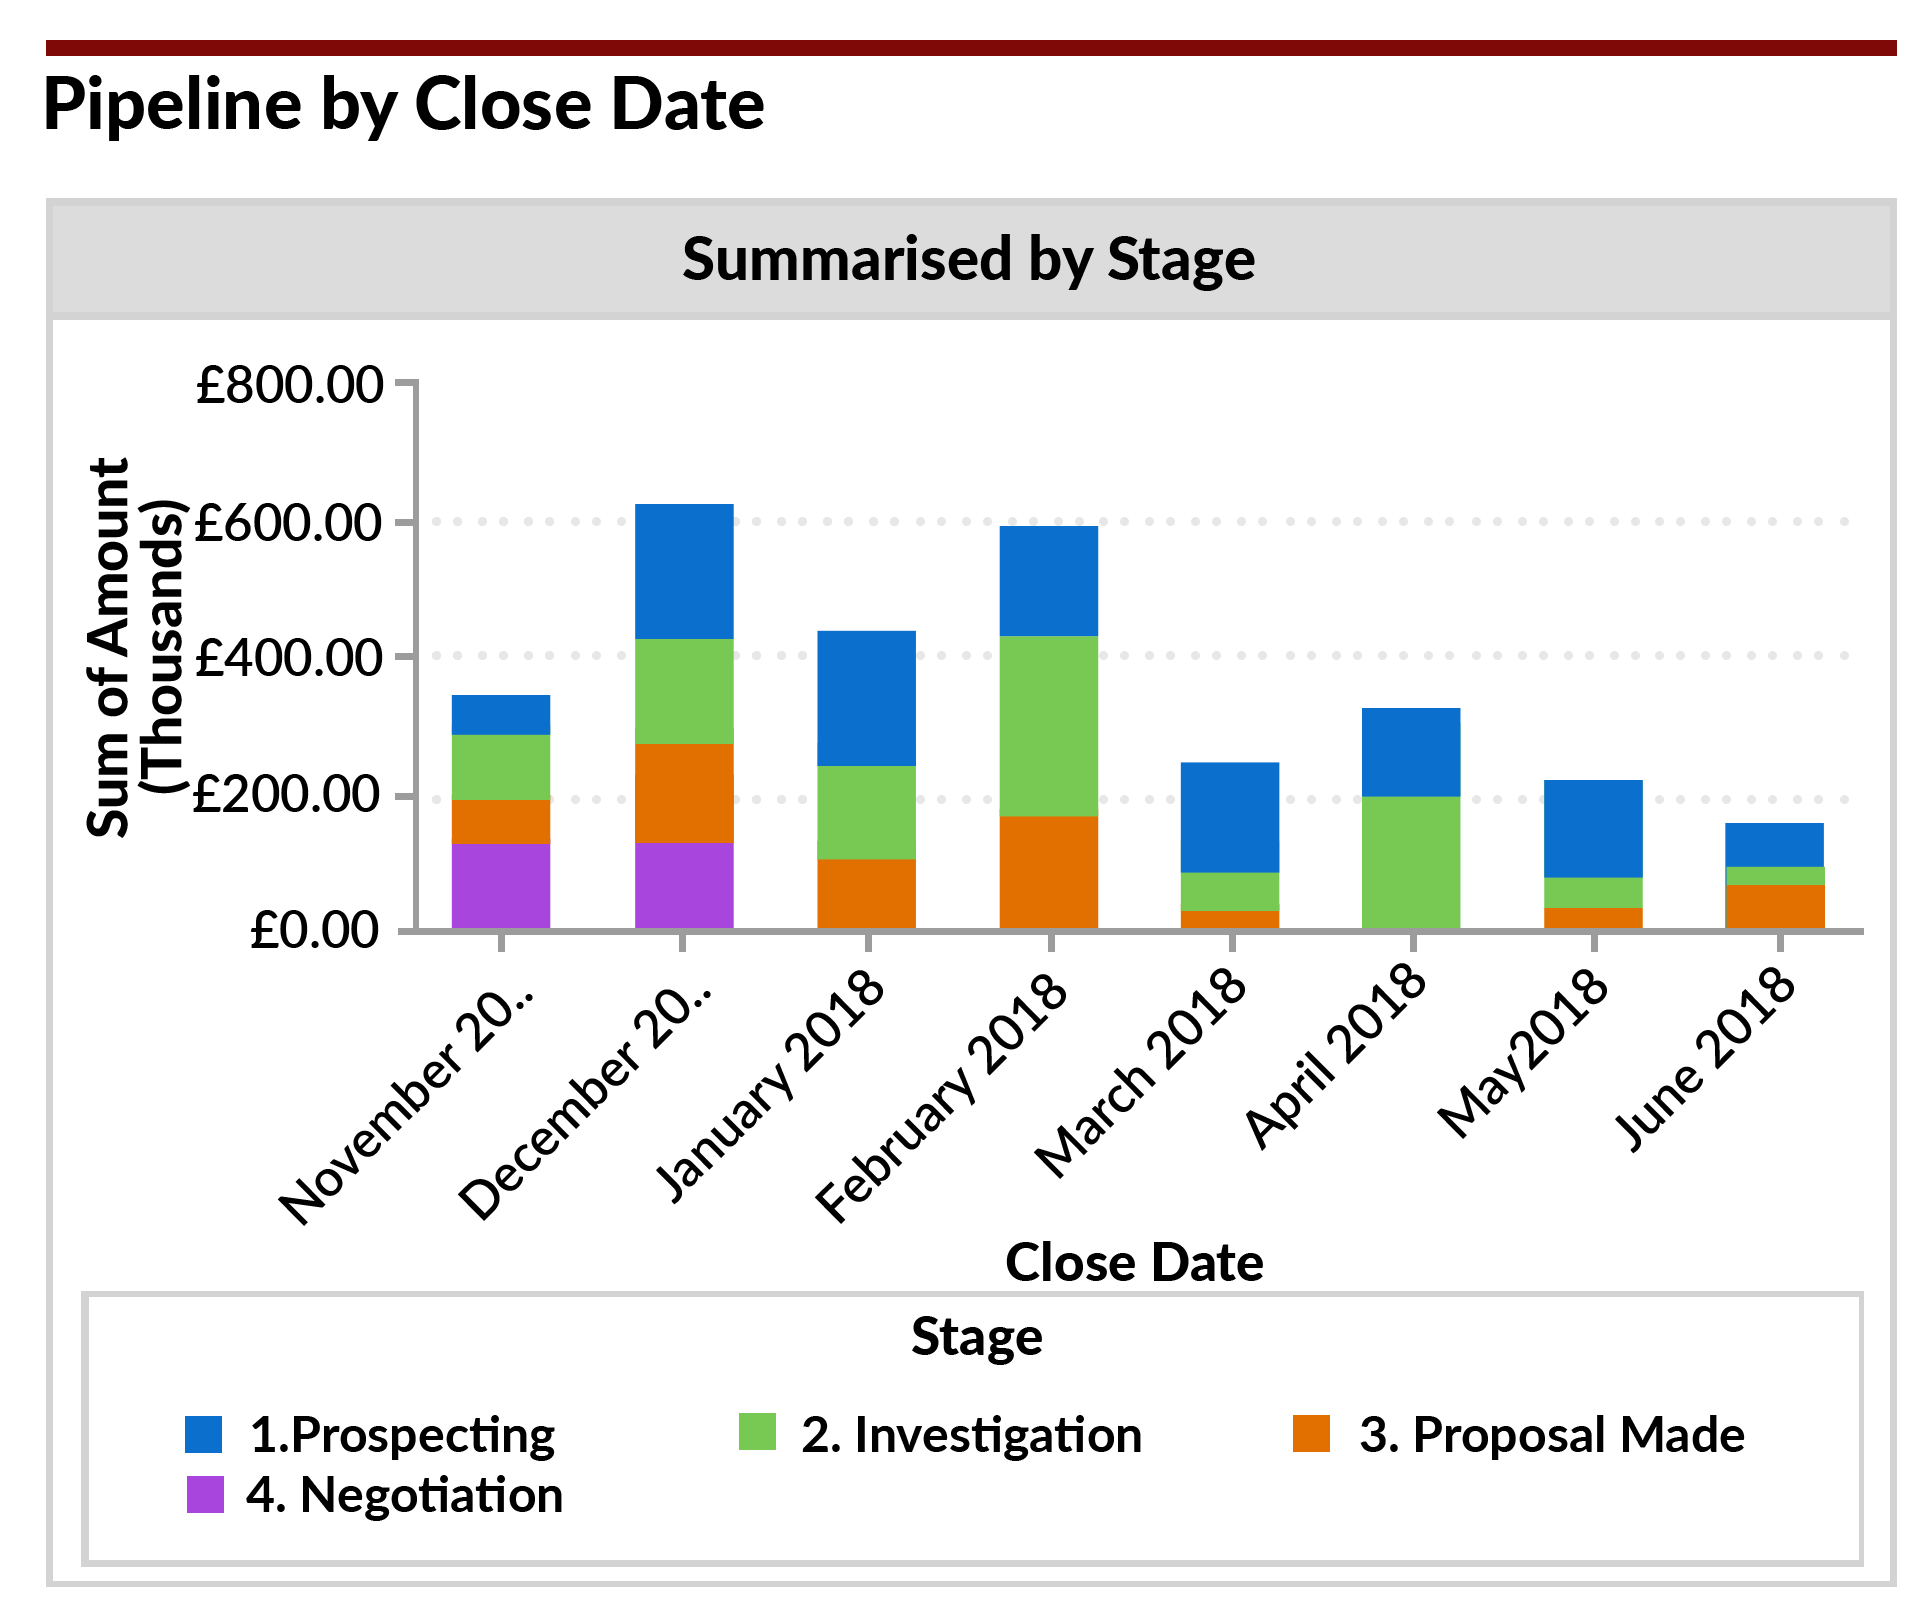 There's often a surge of deals due to close in December when we look at the pipeline in Q4.